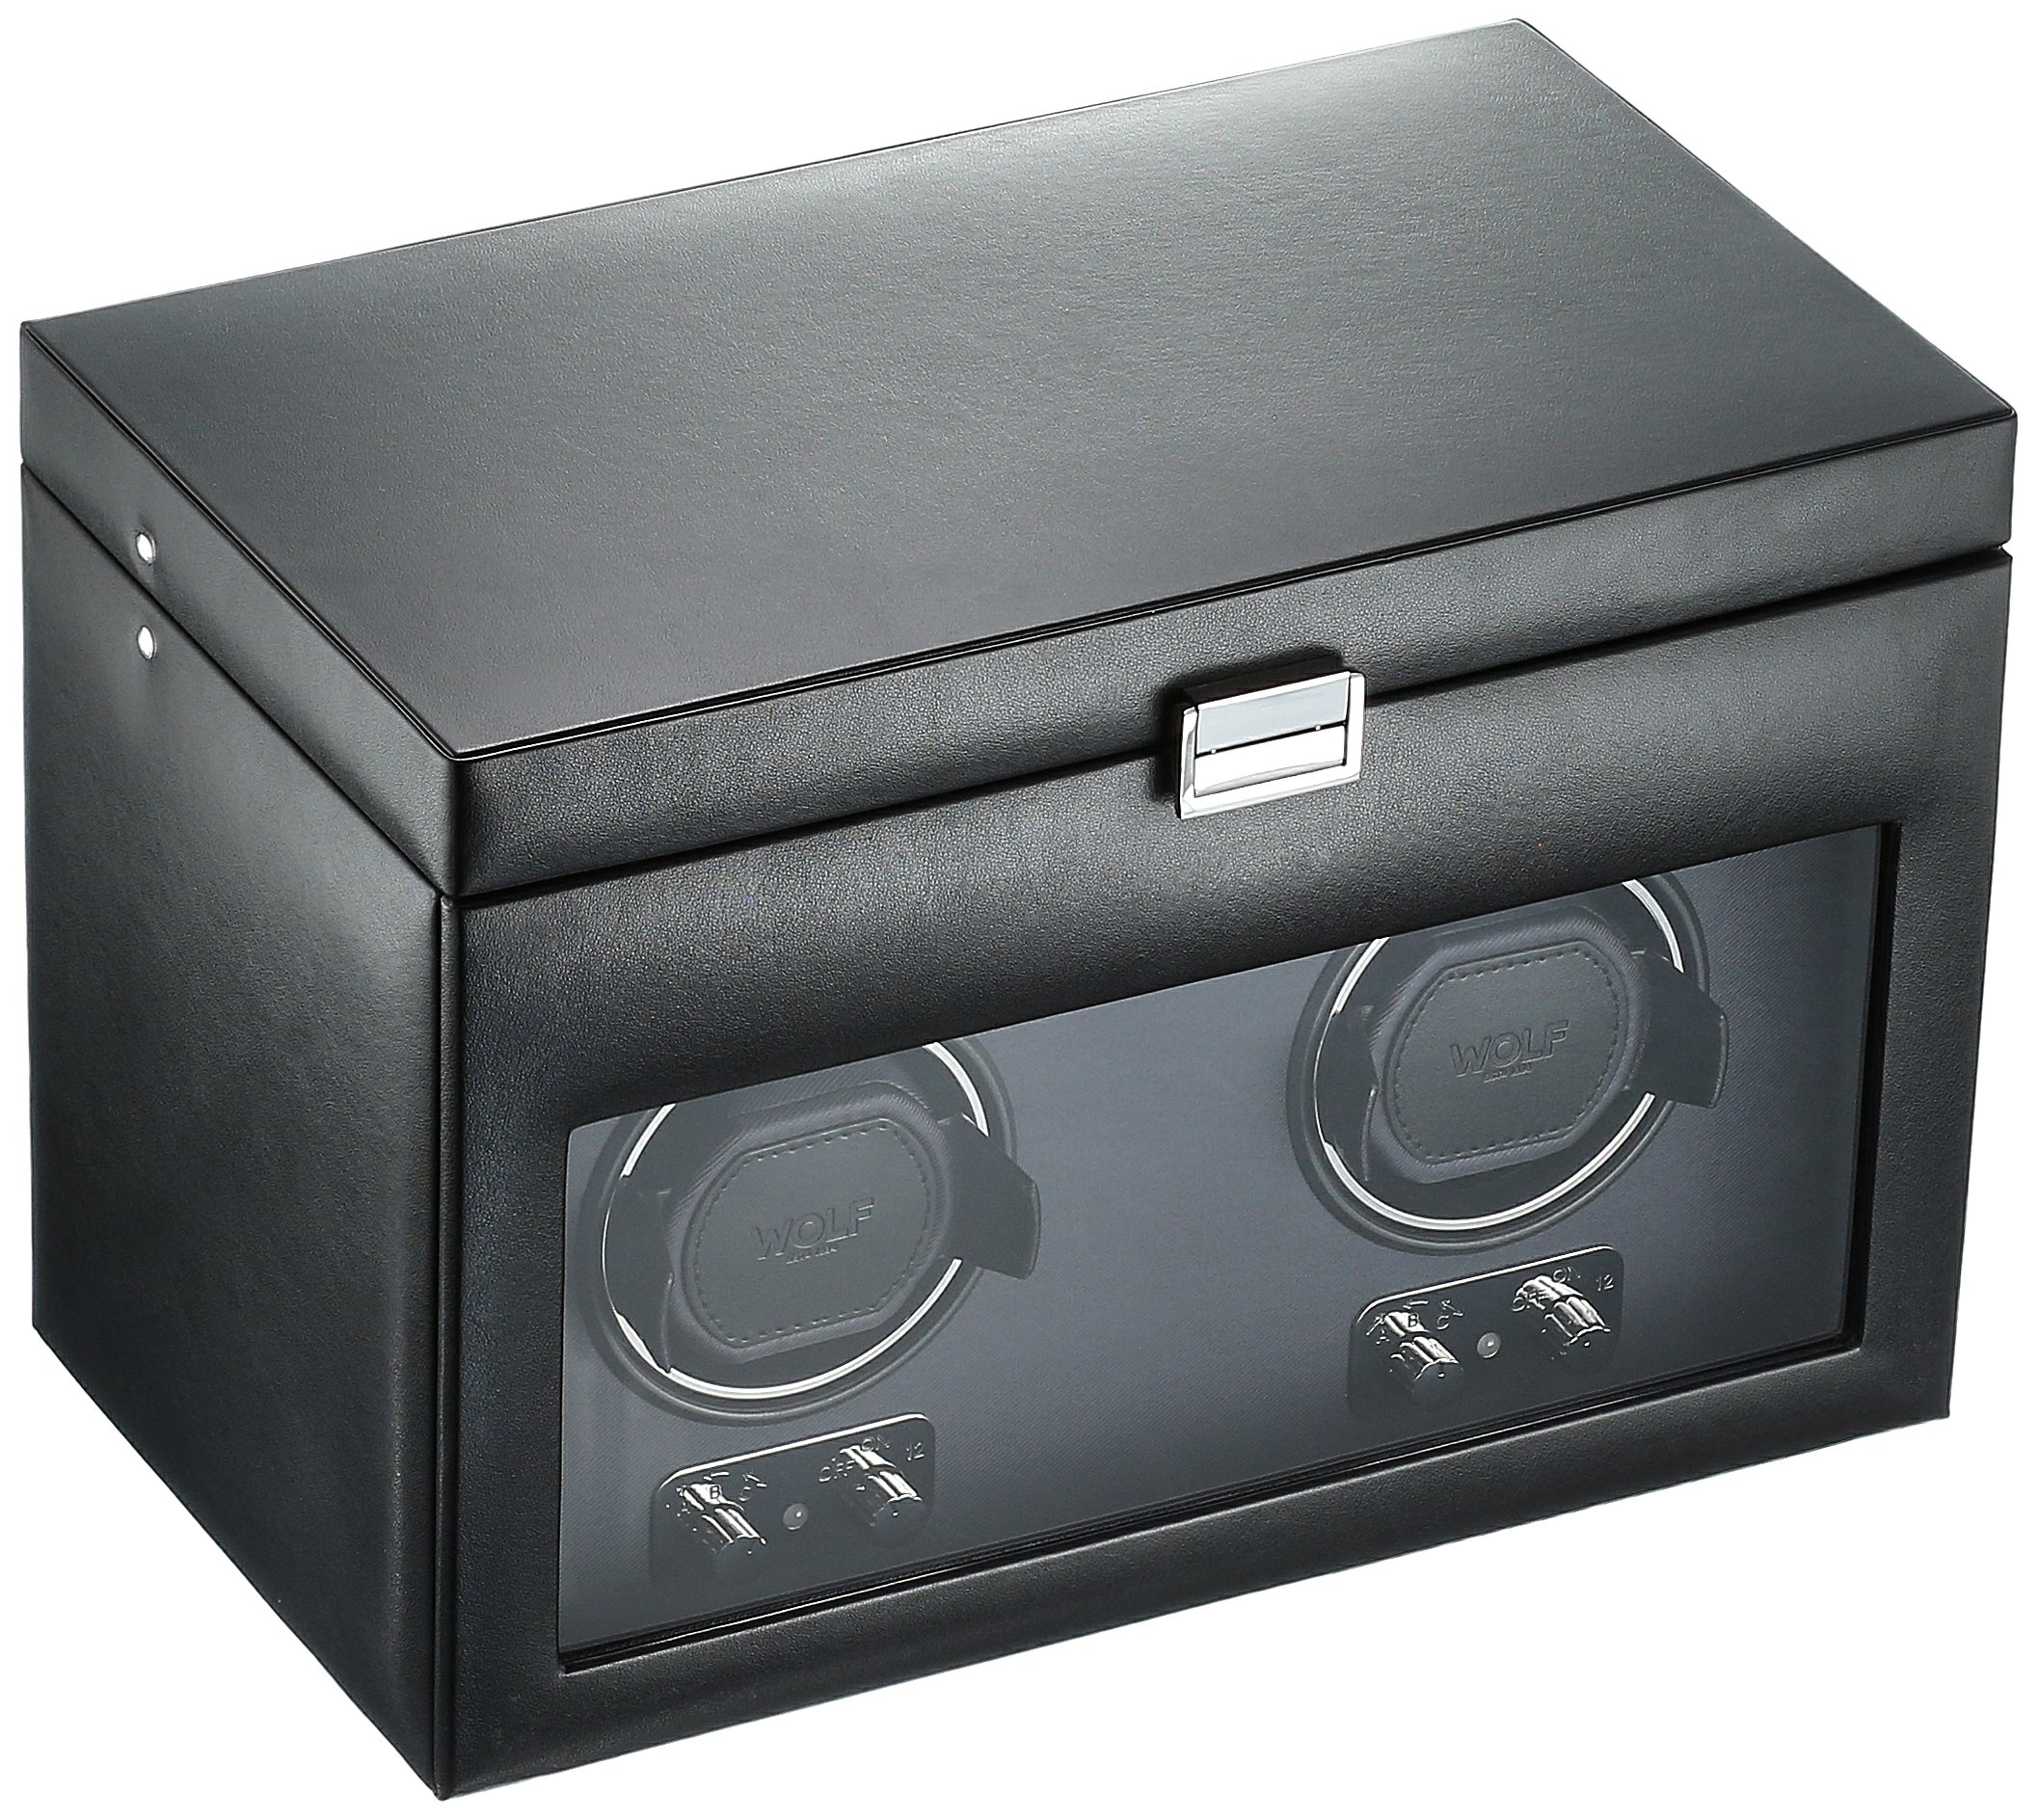 WOLF 270402 Heritage Double Watch Winder with Cover and Storage, Black by WOLF (Image #1)